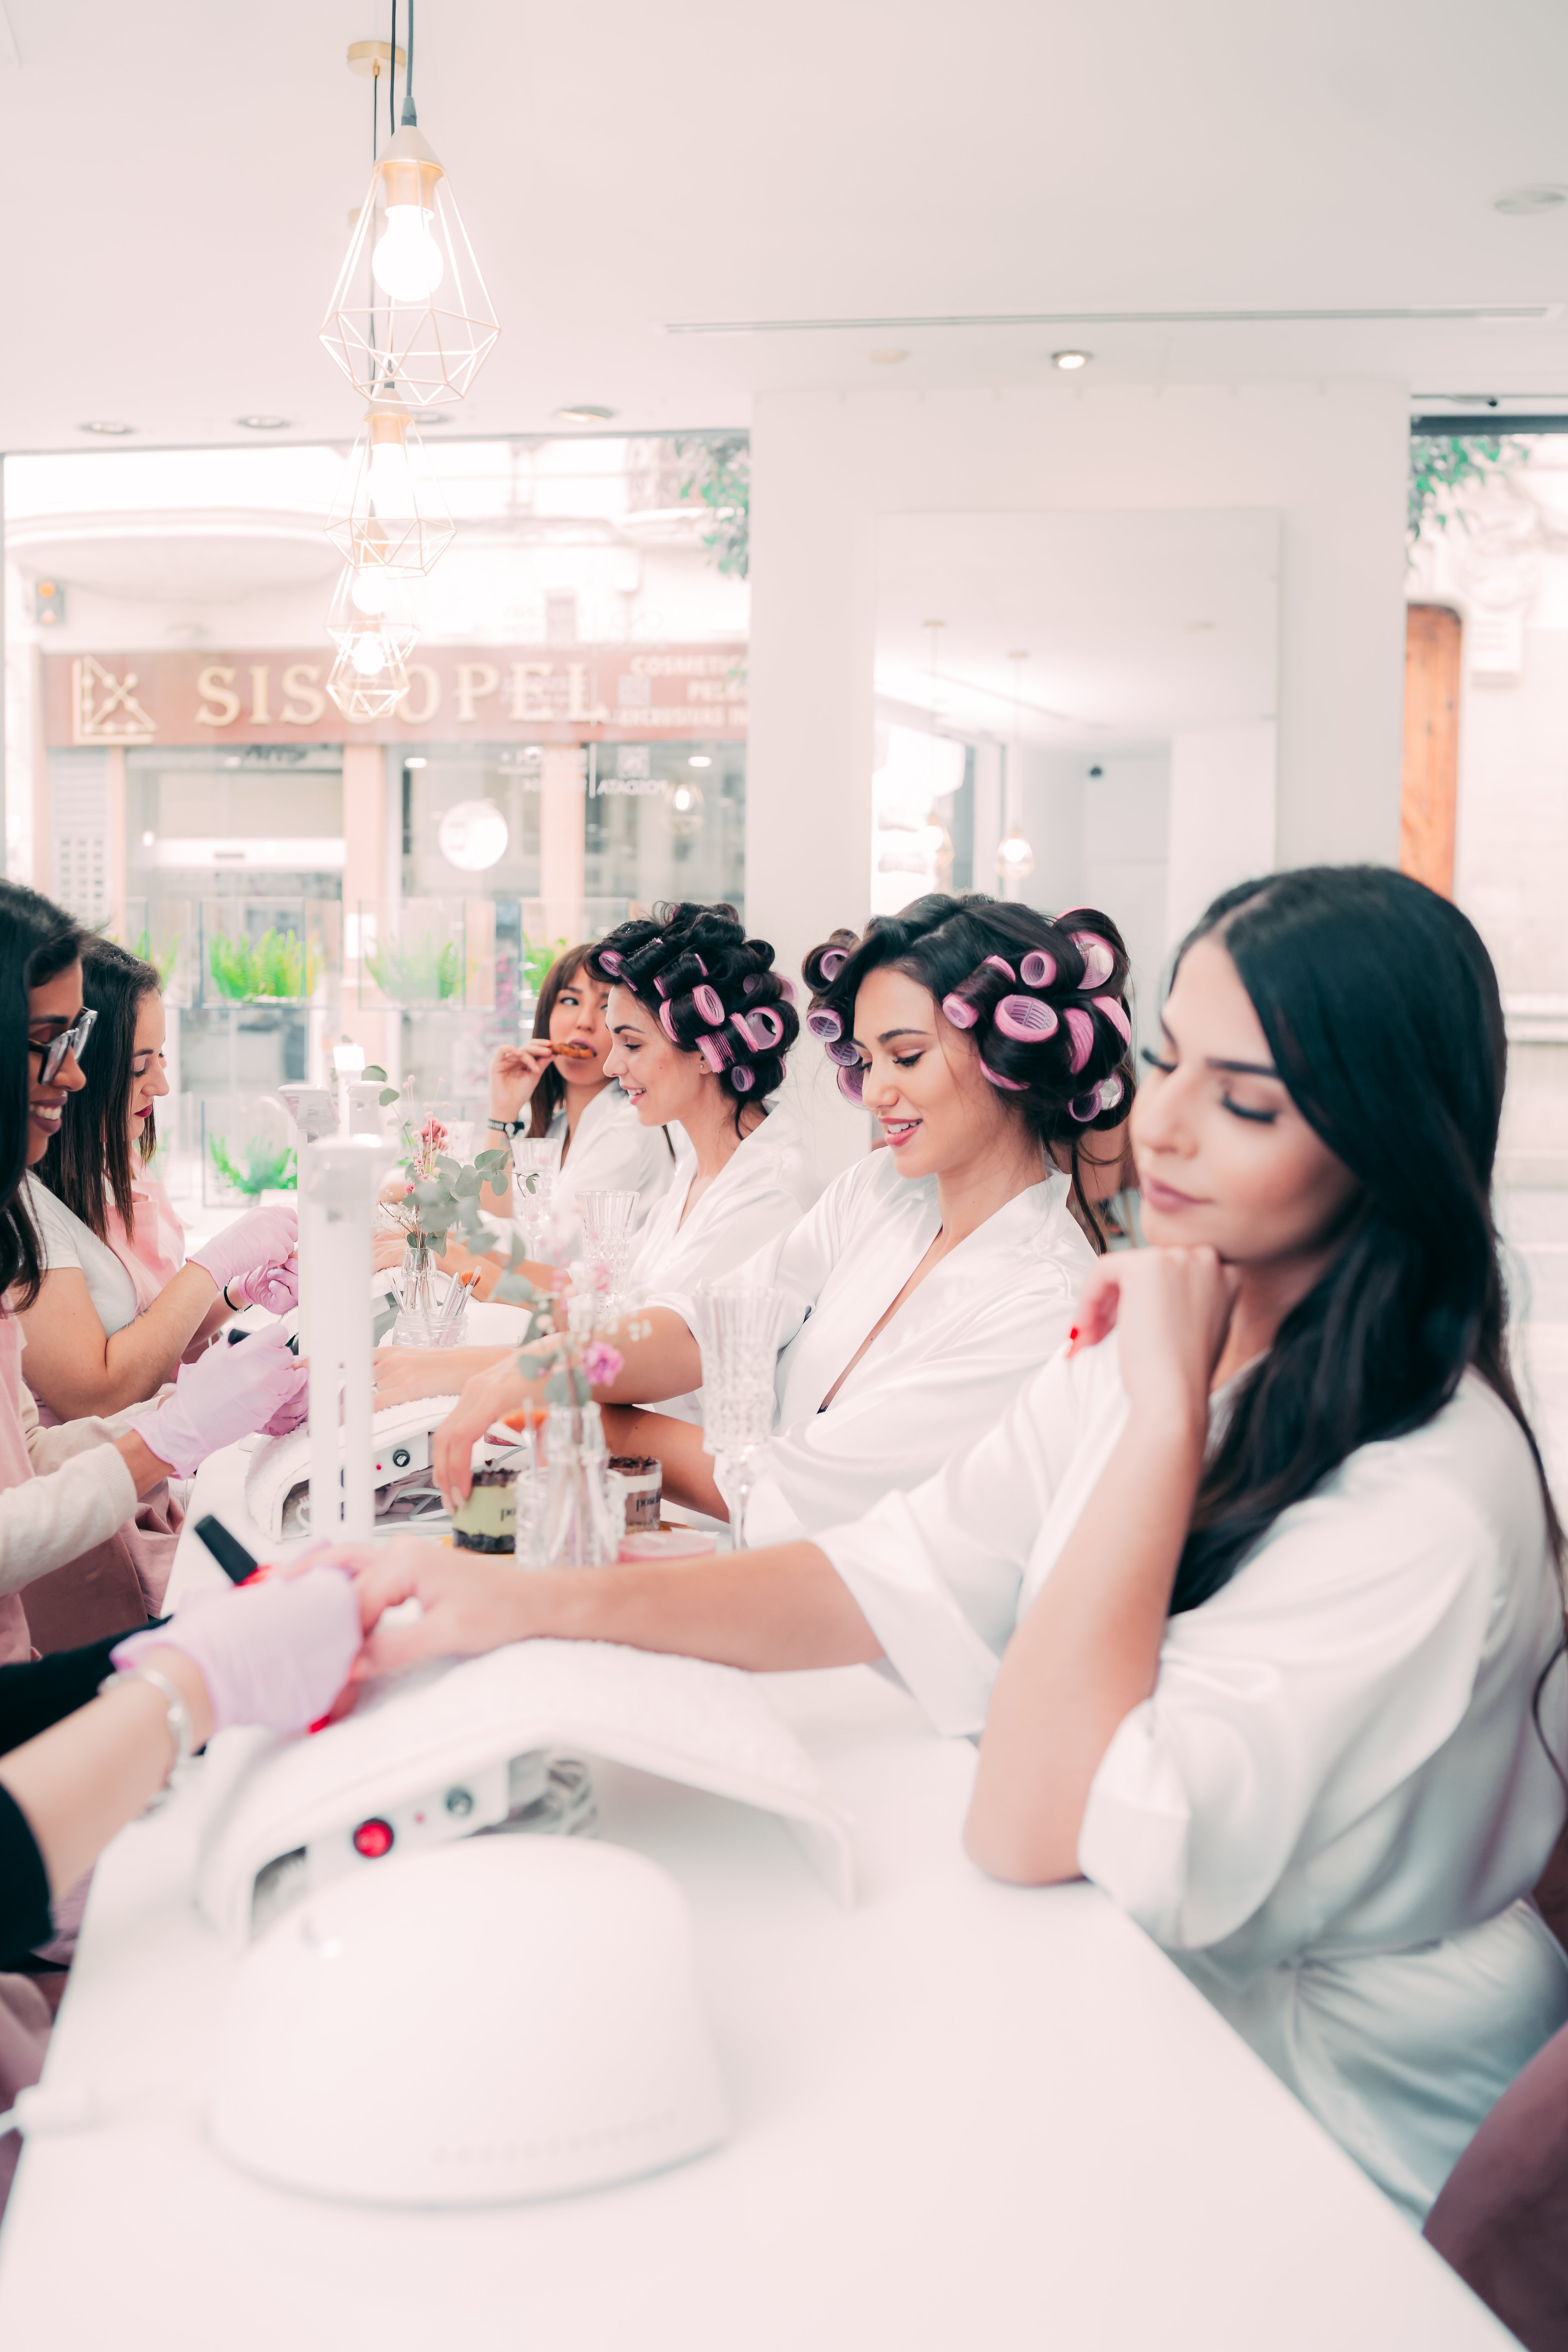 The importance of being fabulous: Stéphanie Agostino's stunning Rose Beauty Salon